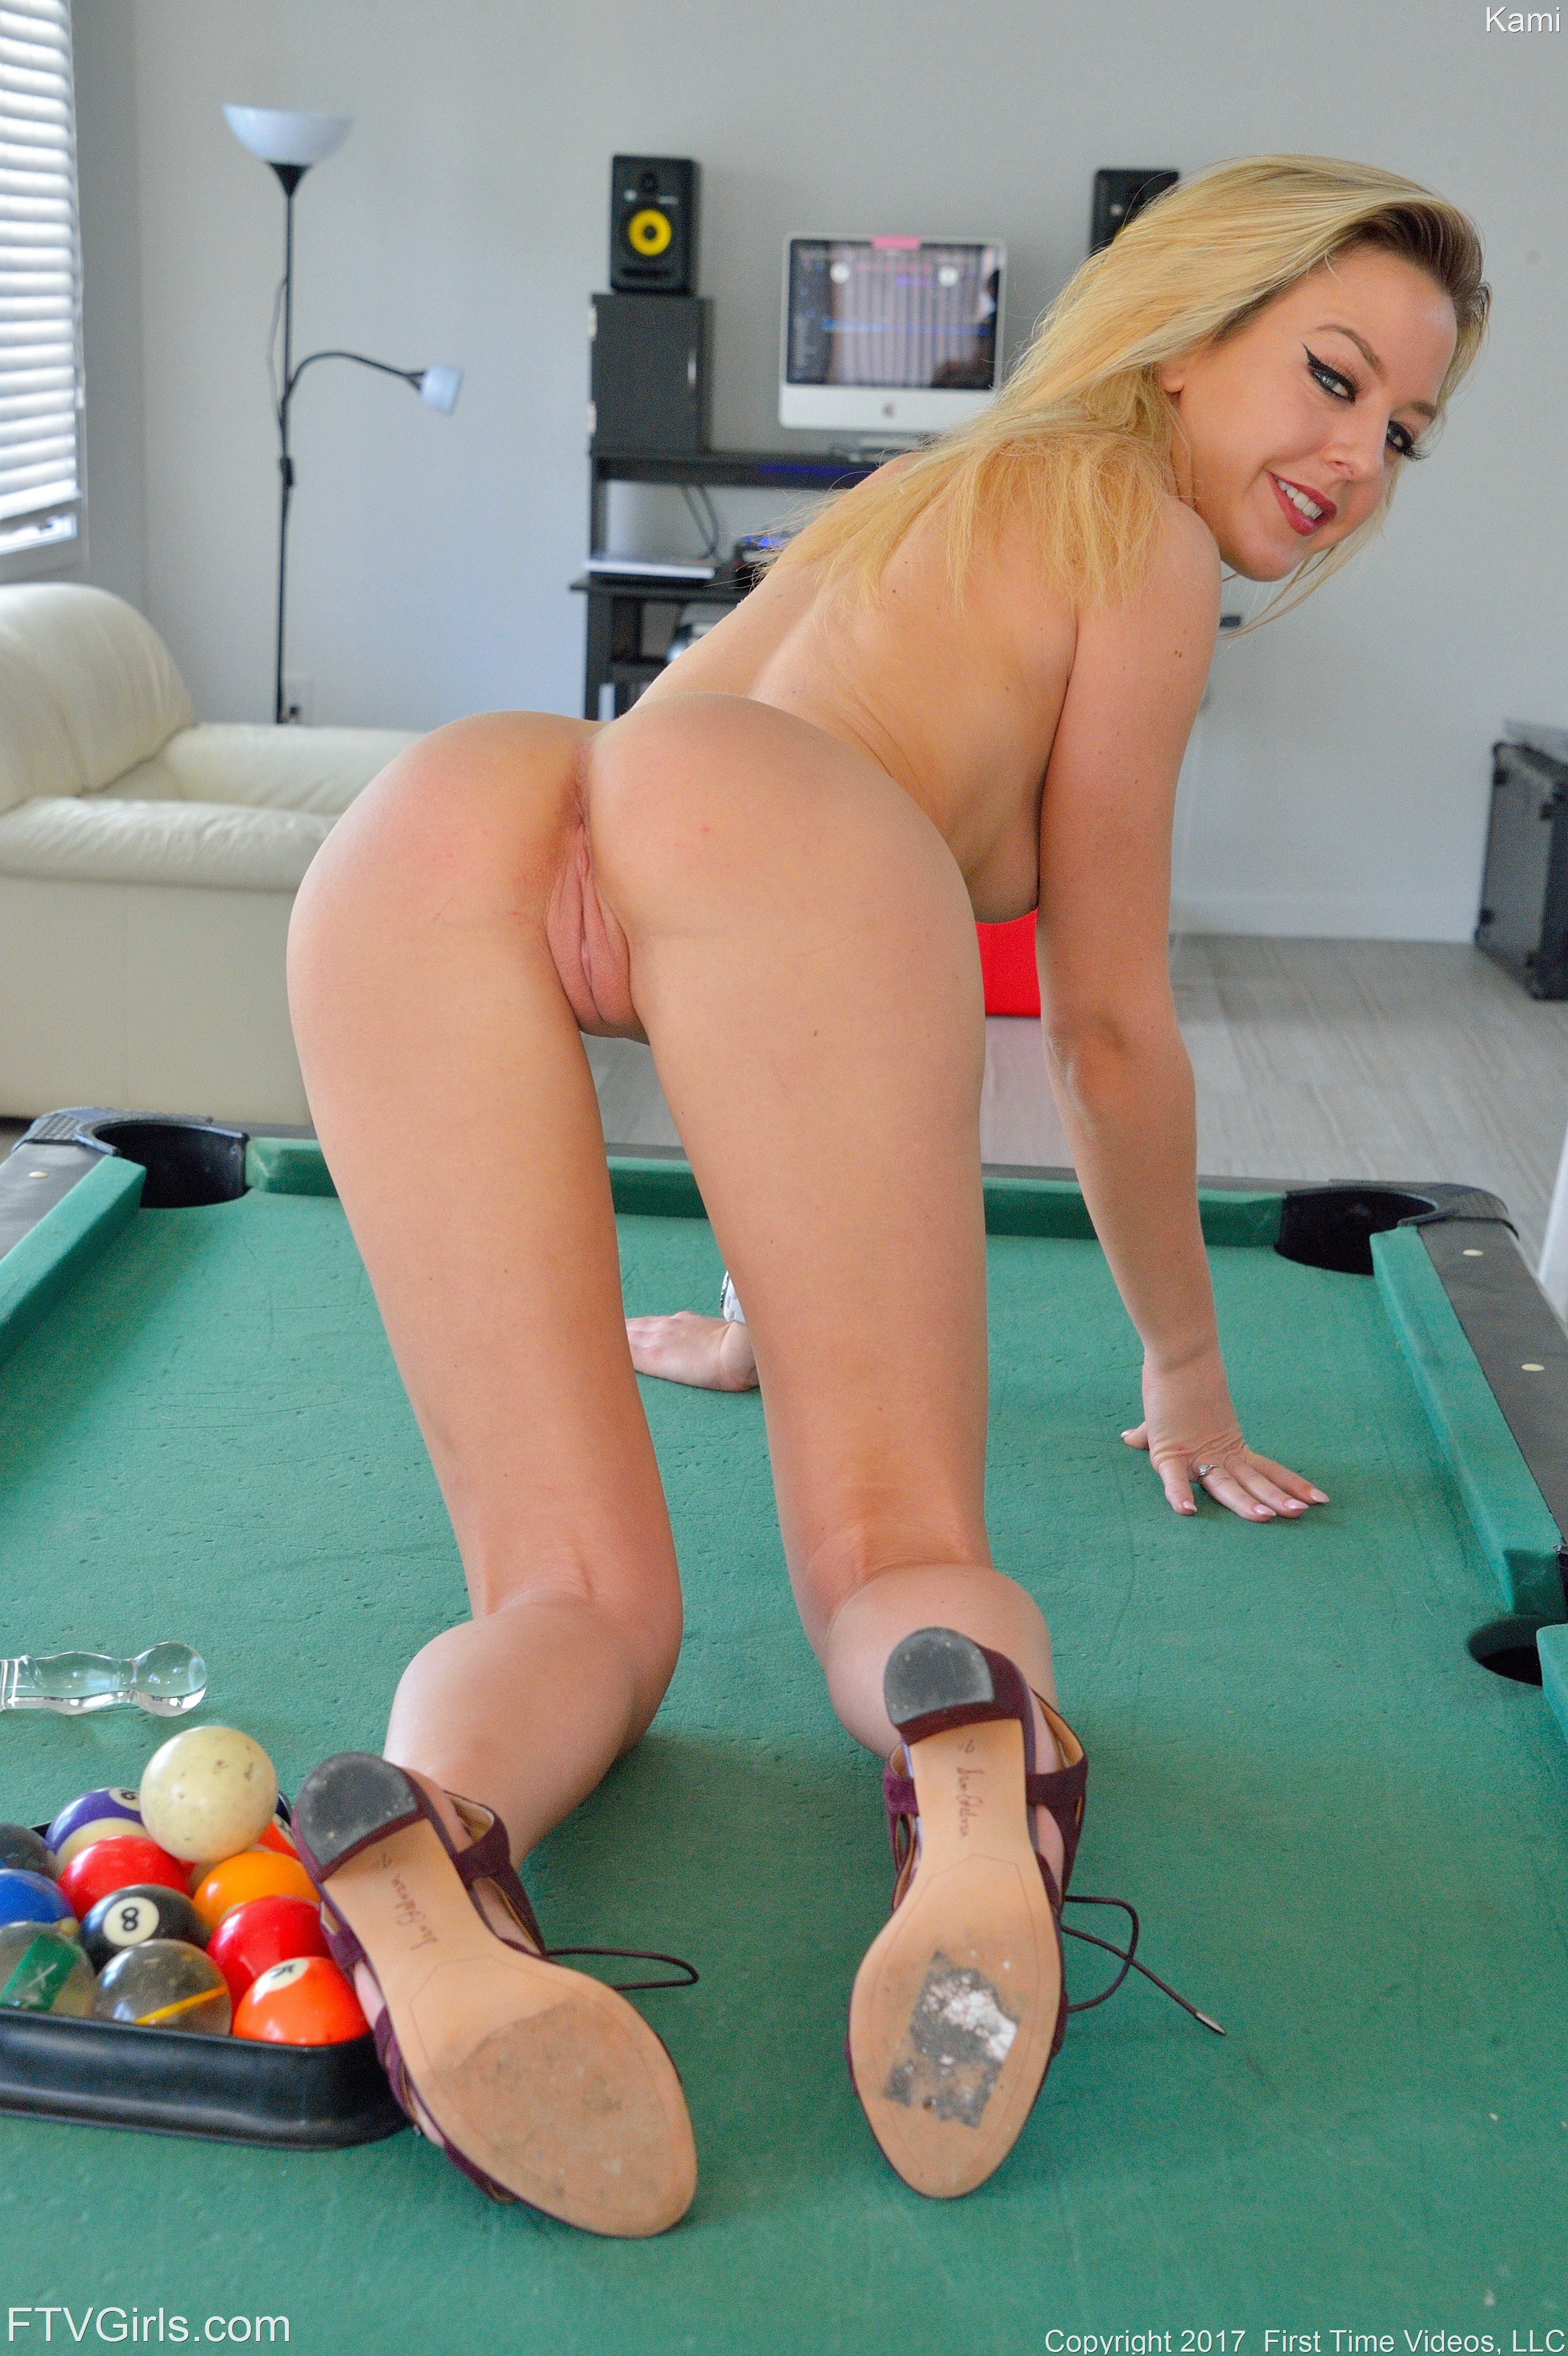 Provocative Kami Stimulate Pussy With Giant Dildo 608114 Young Blonde Chick Bending Ass On Snooker Table